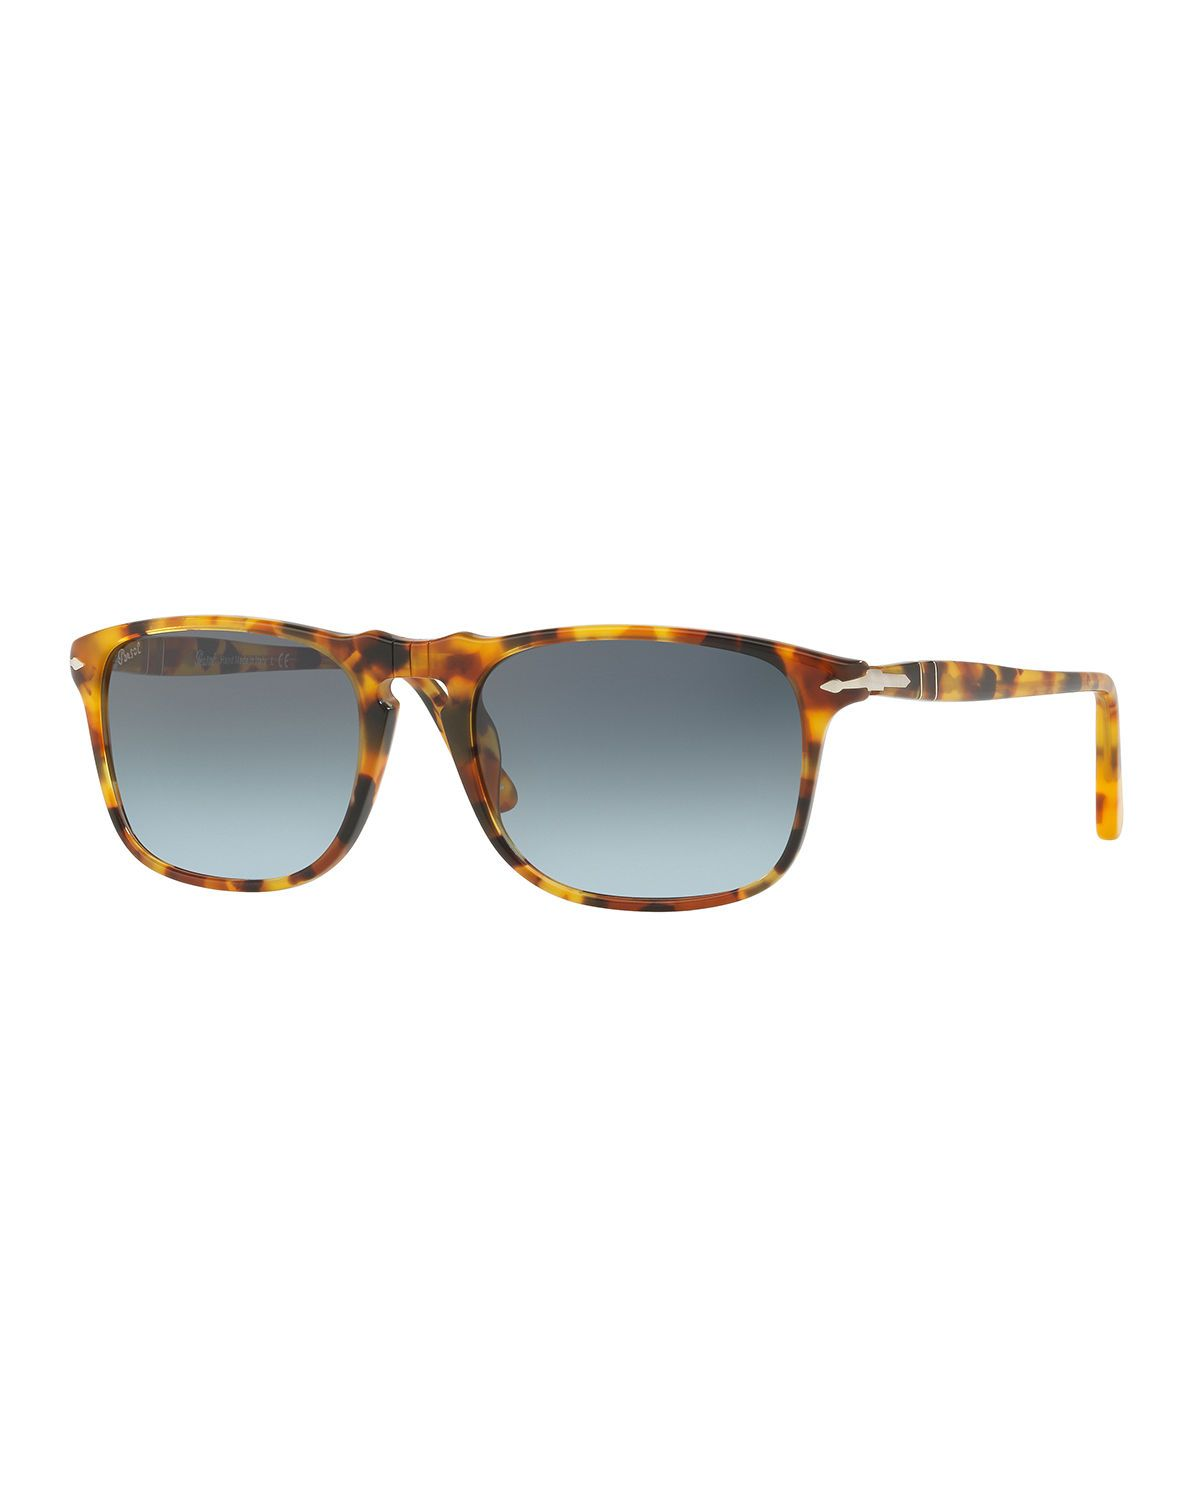 Persol Tortoiseshell Acetate Persol Persol Tortoiseshell Acetate Persol persol Sunglasses Sunglasses persol Tortoiseshell persol Acetate Acetate Sunglasses Tortoiseshell RxWdqCgwvw